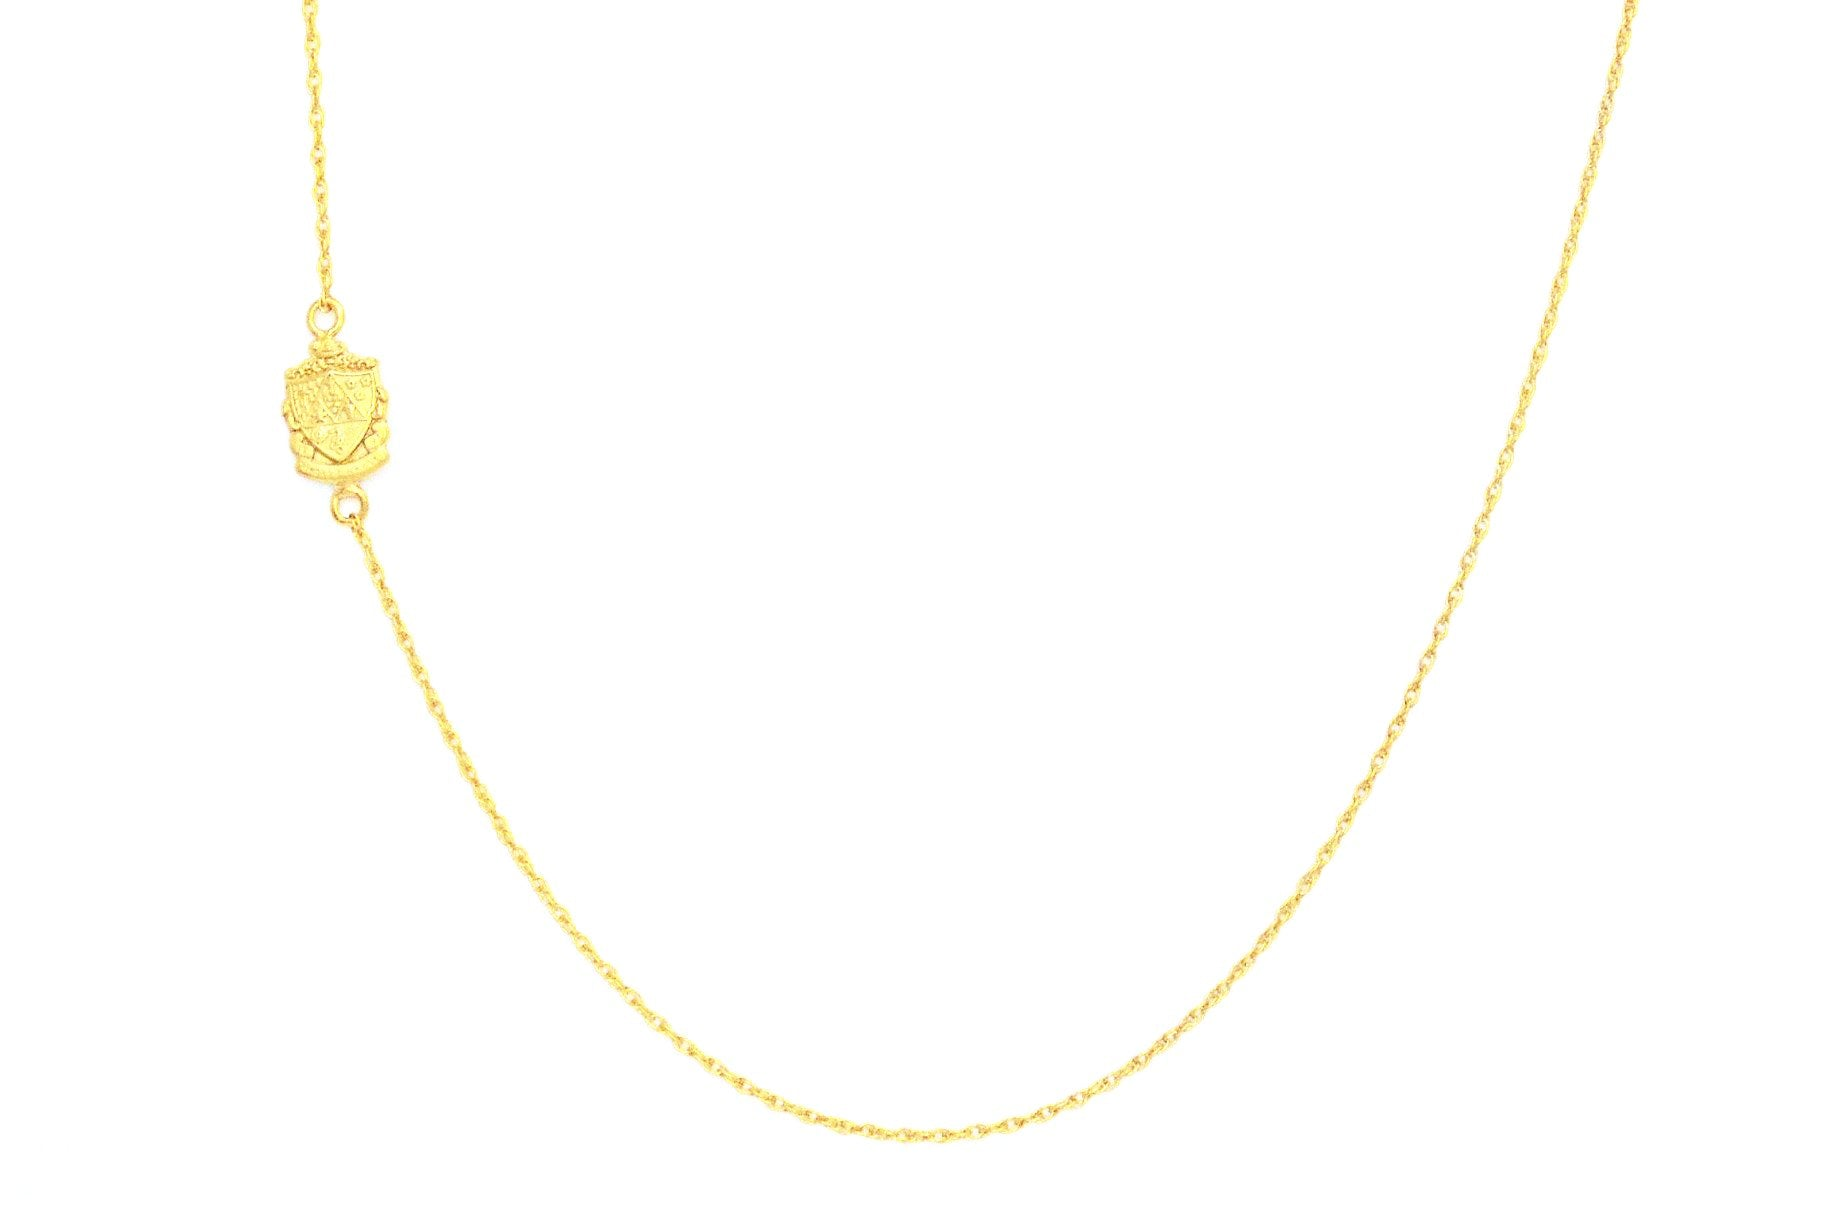 Kappa Delta Side Crest Necklace